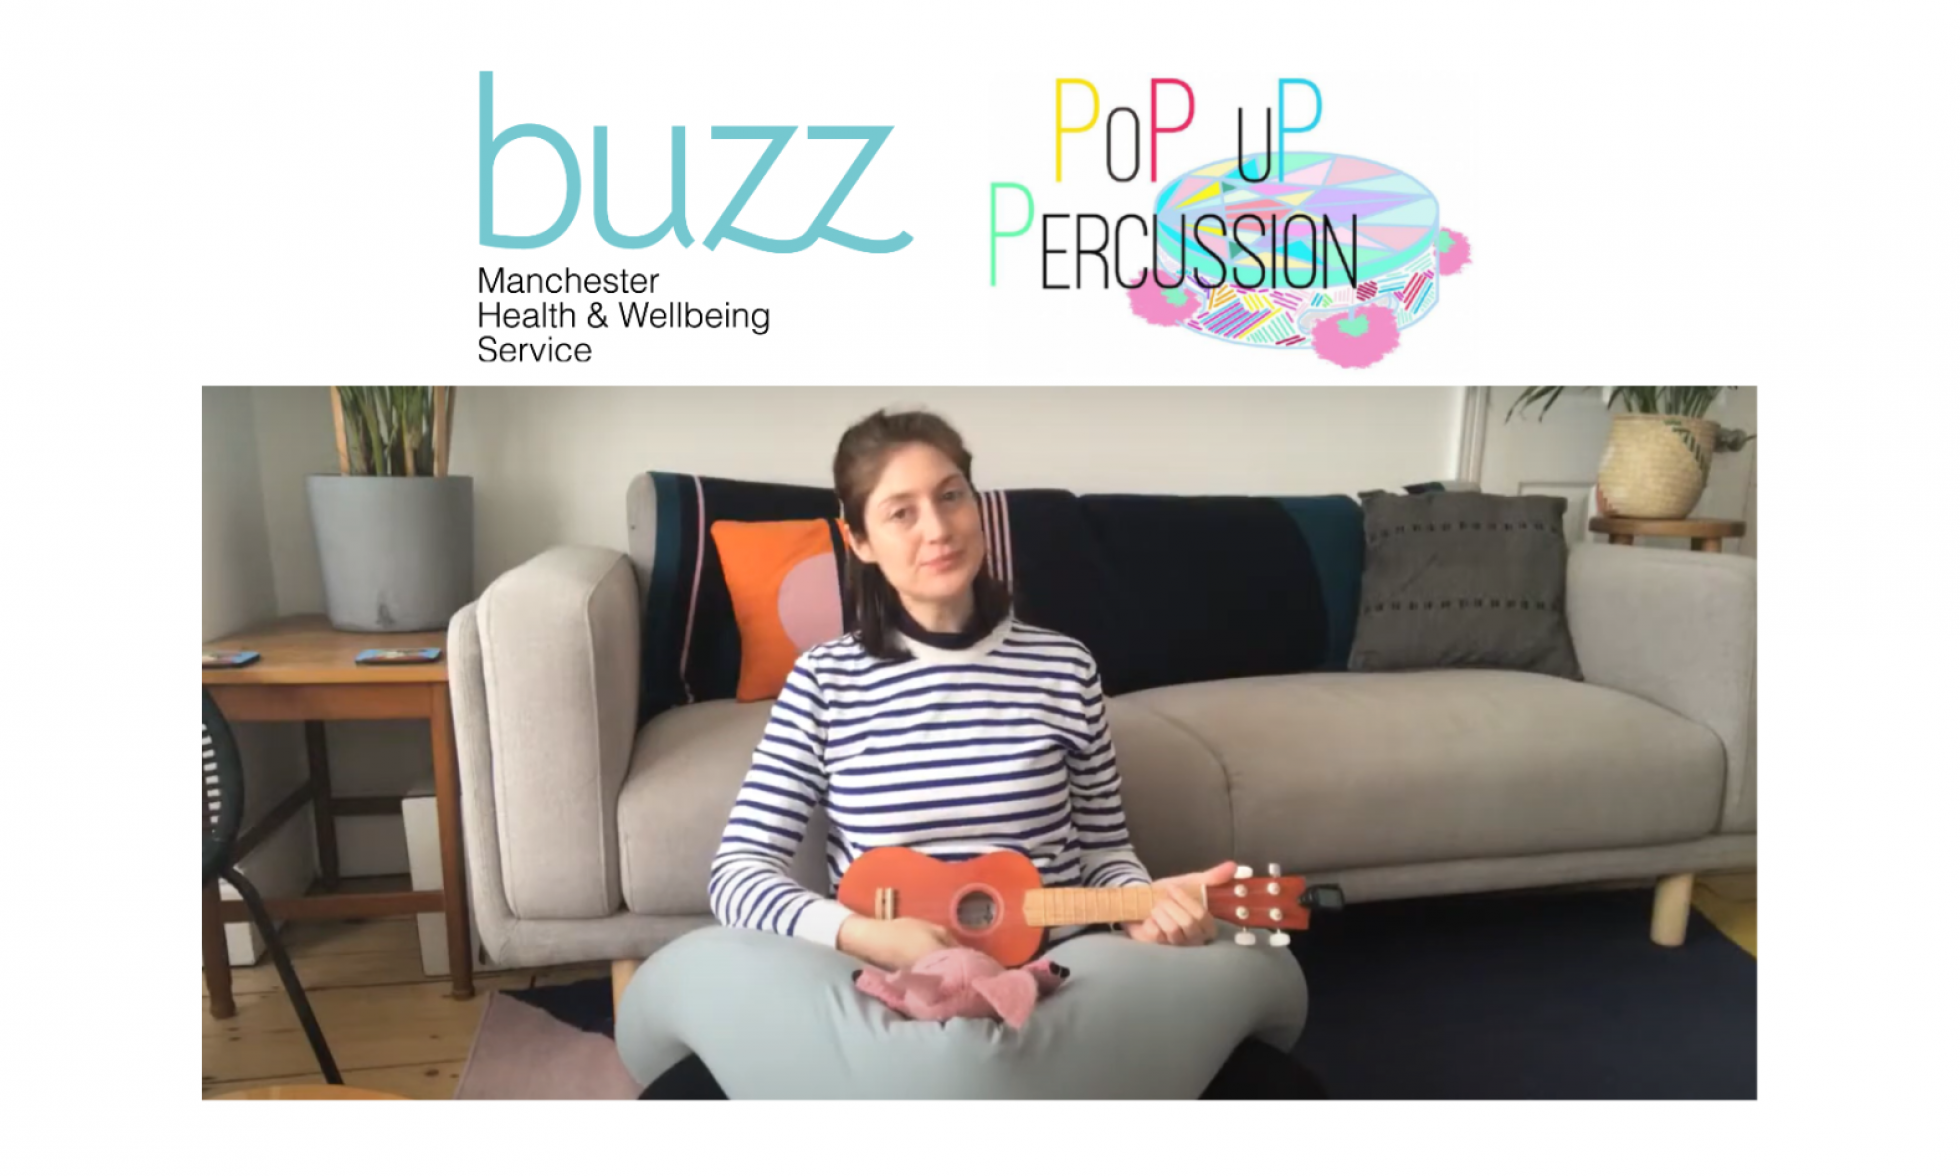 Pop Up Percussion – FREE wonderfully fun, creative music sessions for children 0-6!